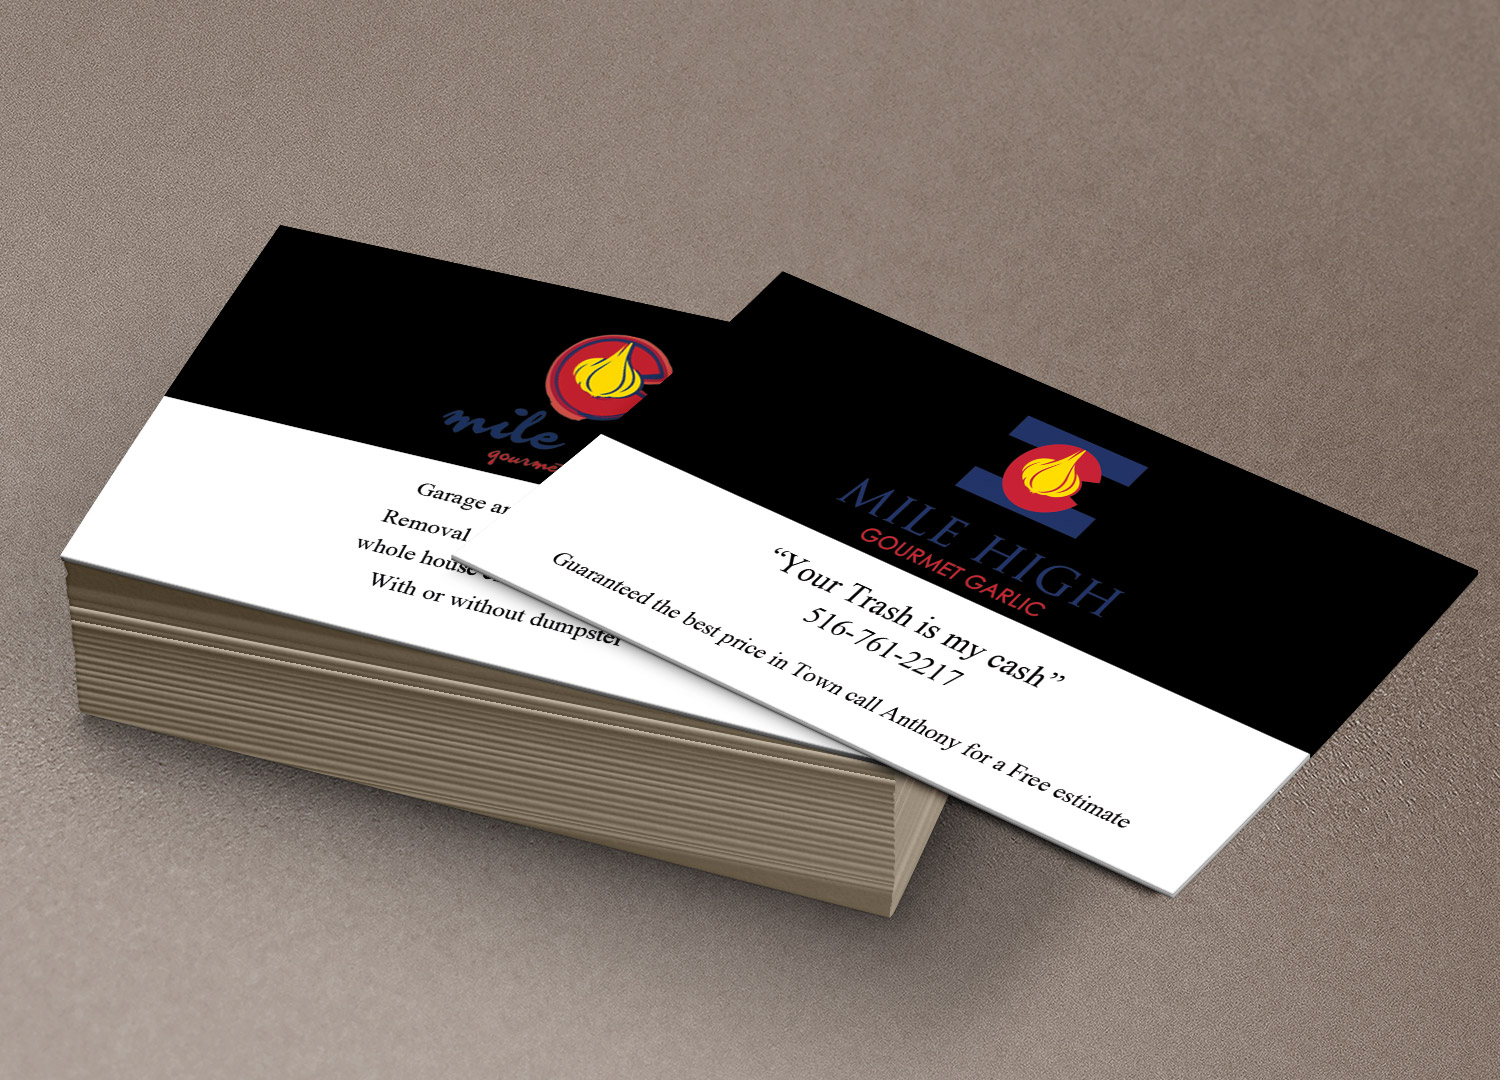 Playful personable agriculture business card design for mile high business card design by pawana designs for mile high gourmet garlicllc design reheart Choice Image